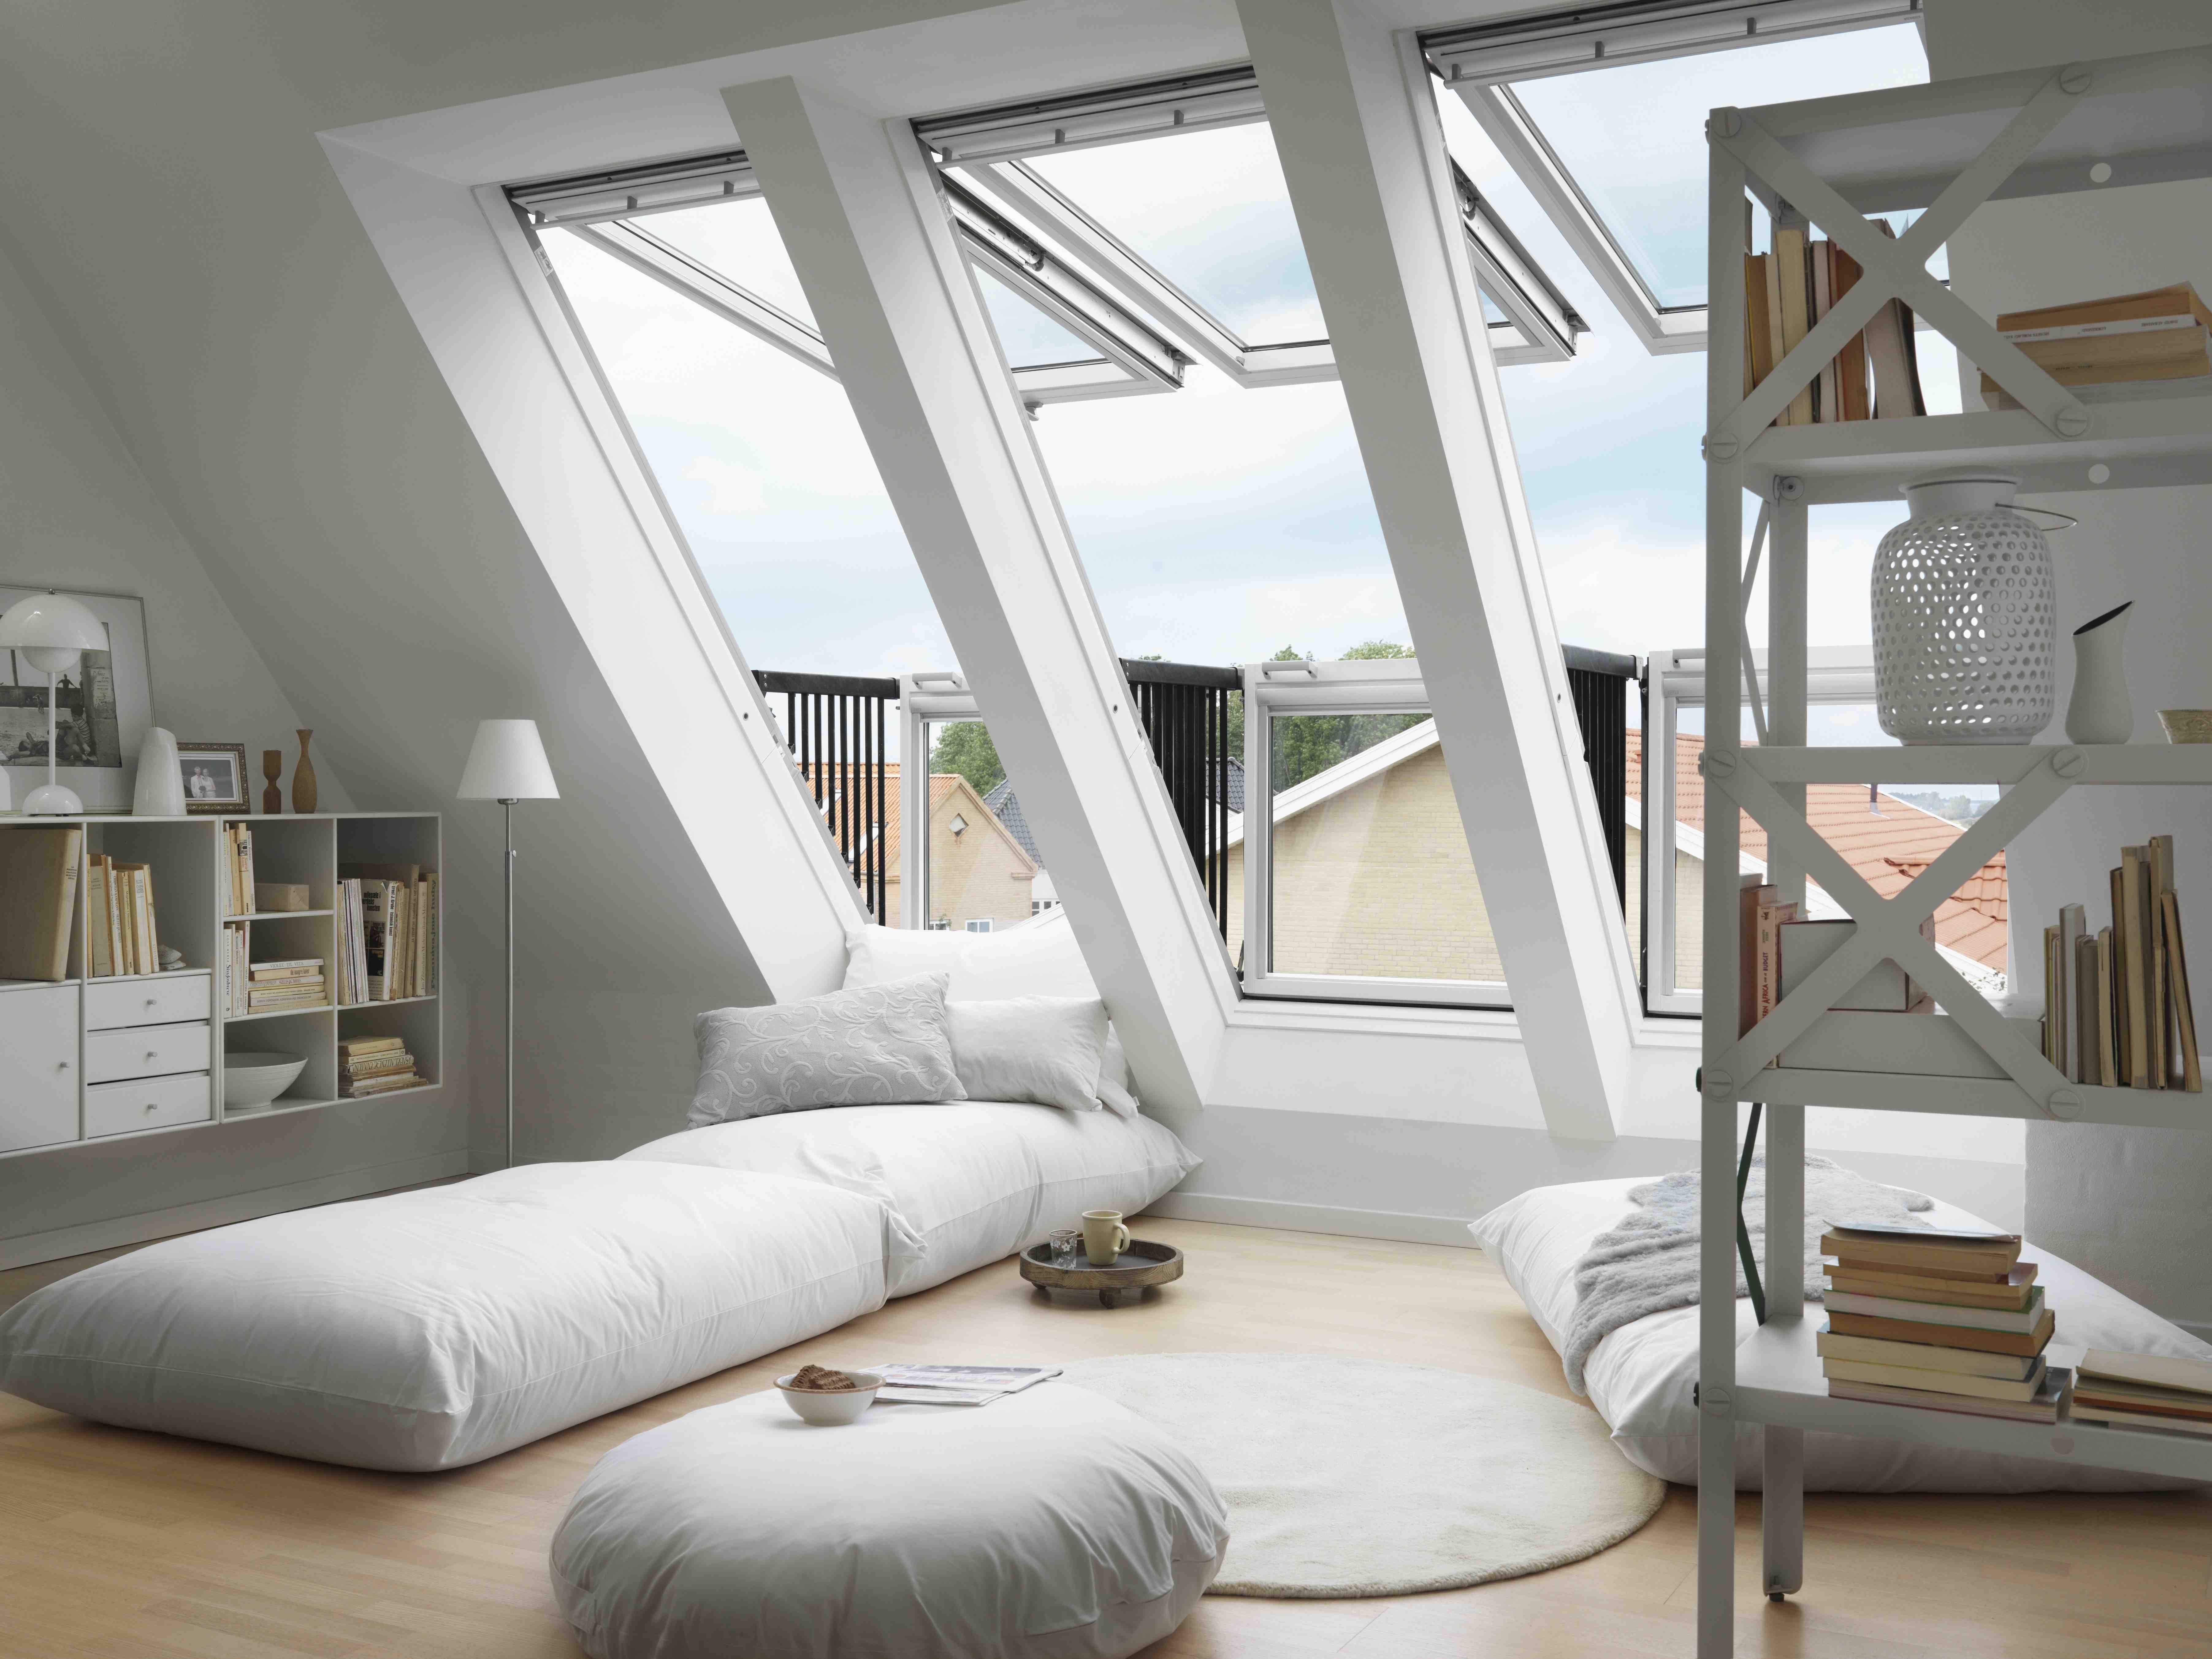 Slice Of Heaven Turn An Unused Attic Or Above Garage Room Into An Extraordinary Living Space That Brings The Outdoors In W Simple Bedroom Home Interior Design